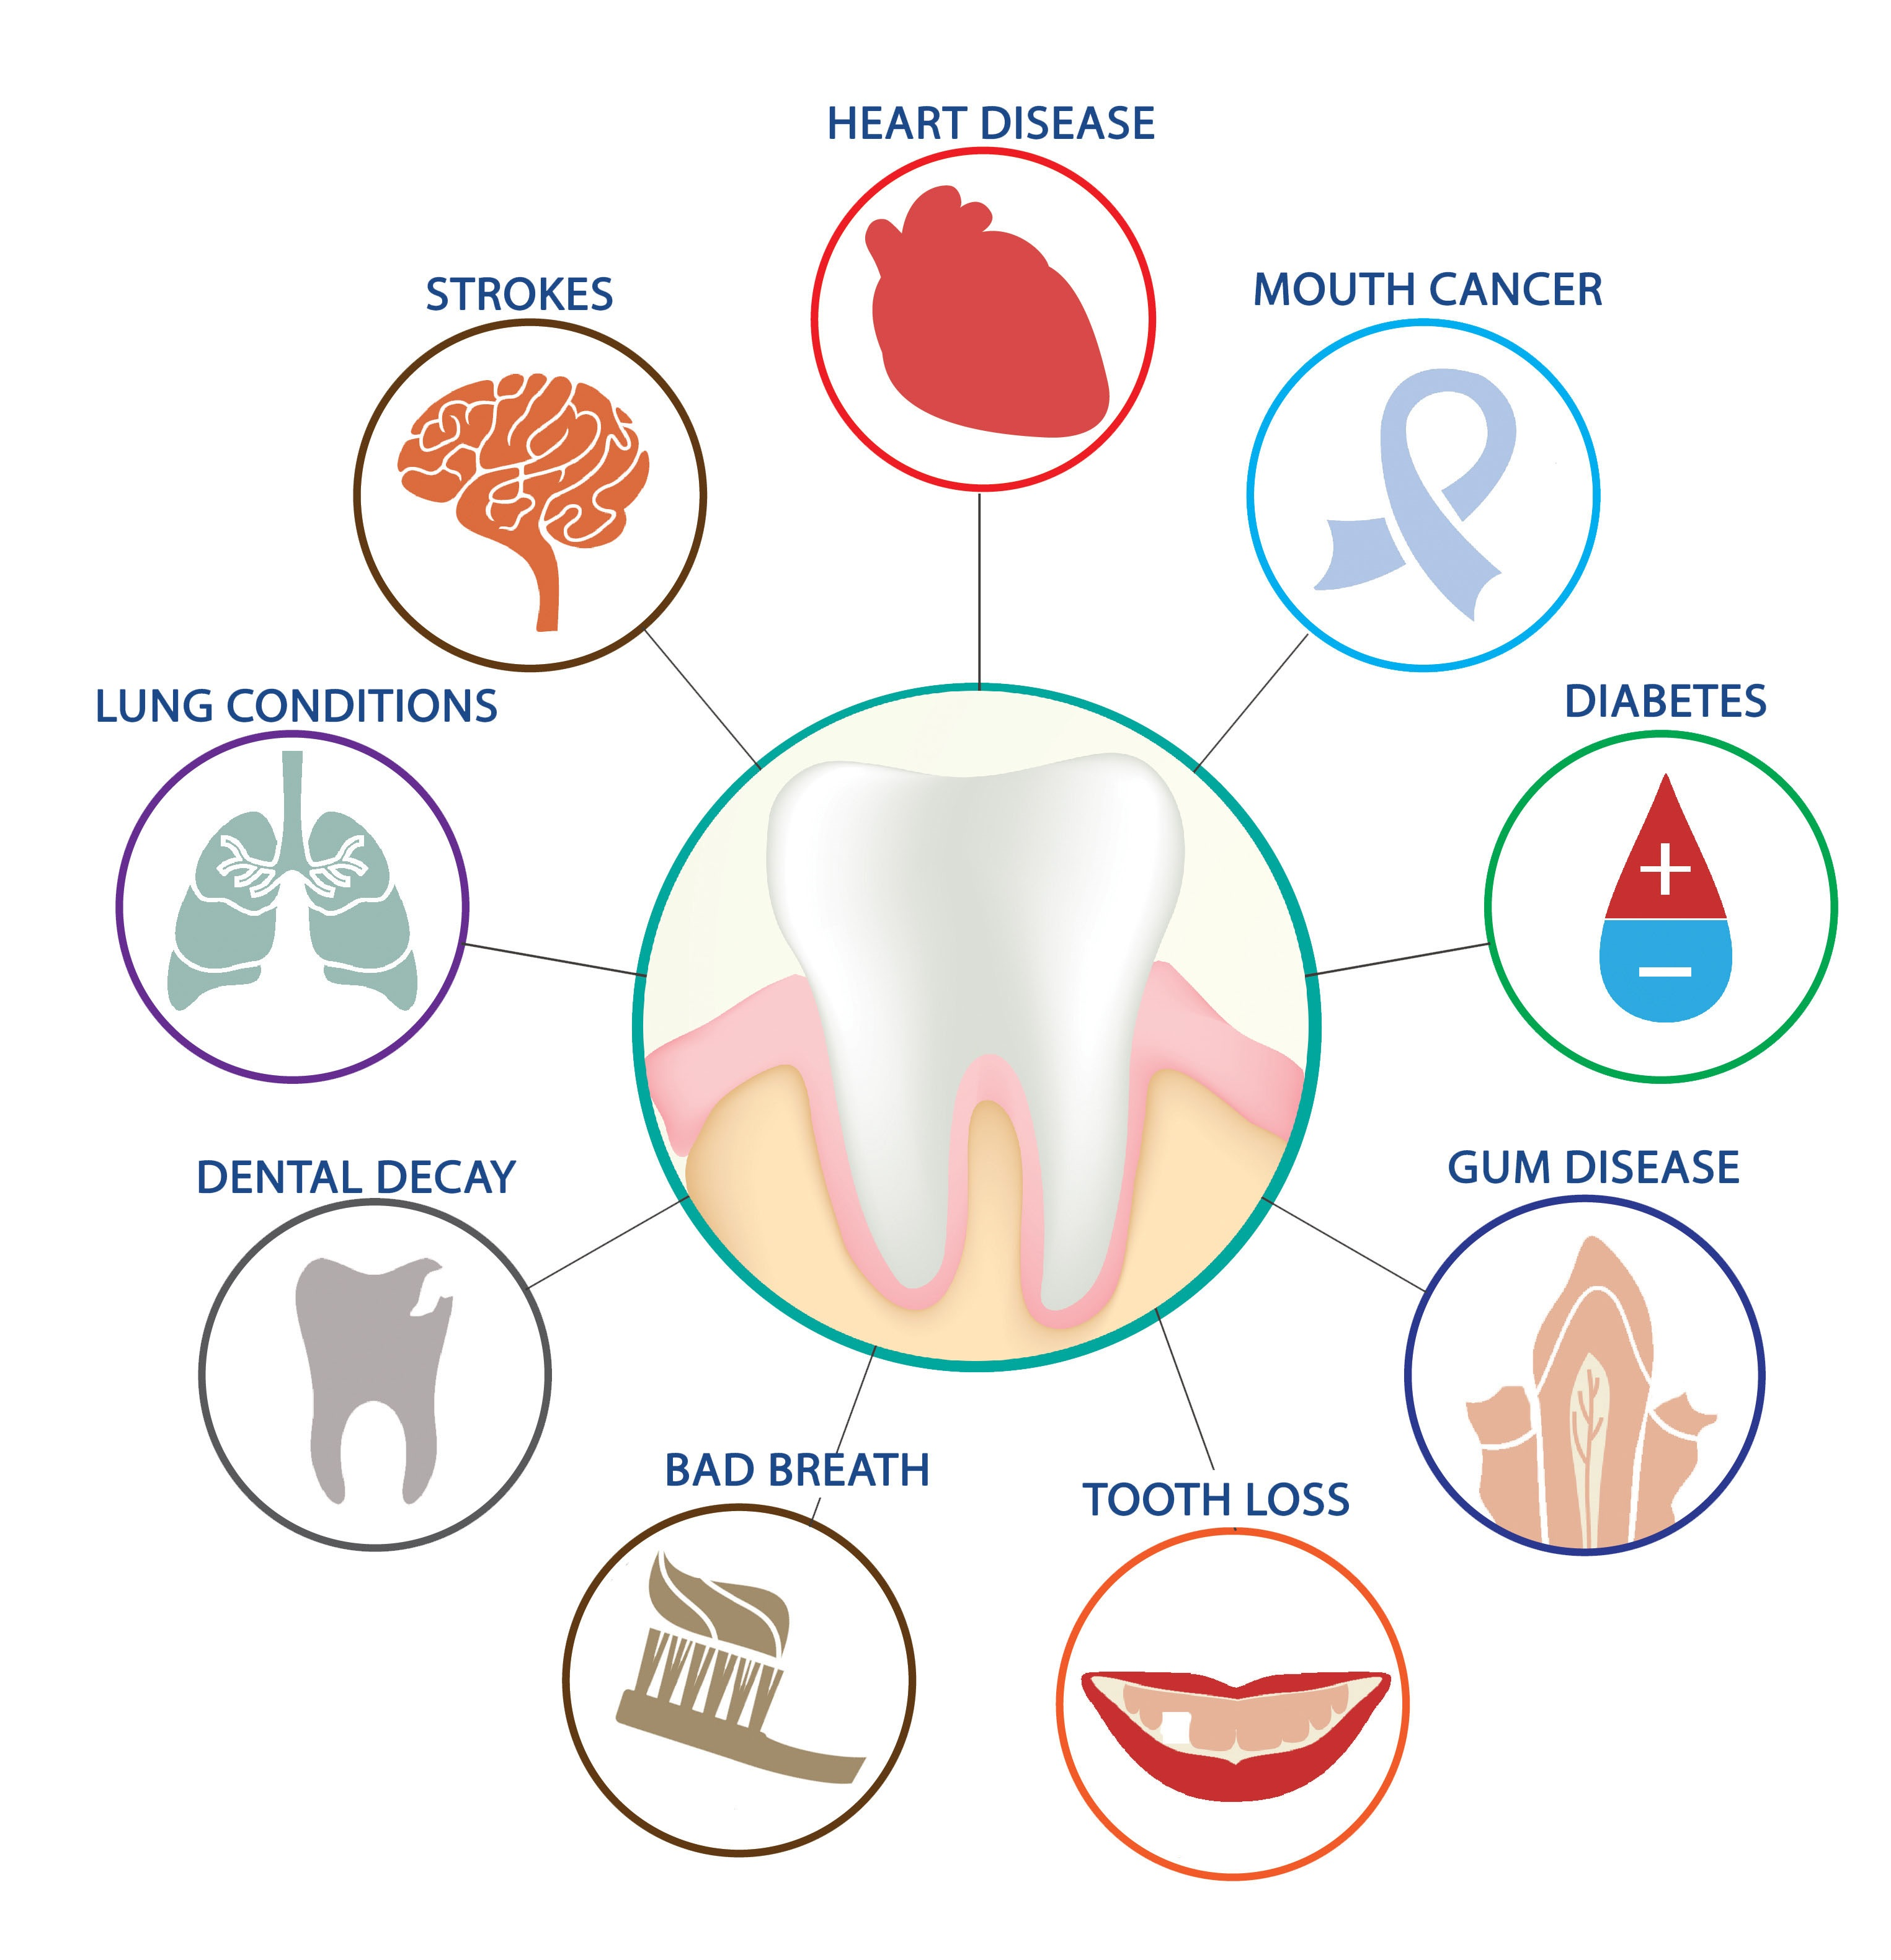 Issues Associated with Poor Oral Health